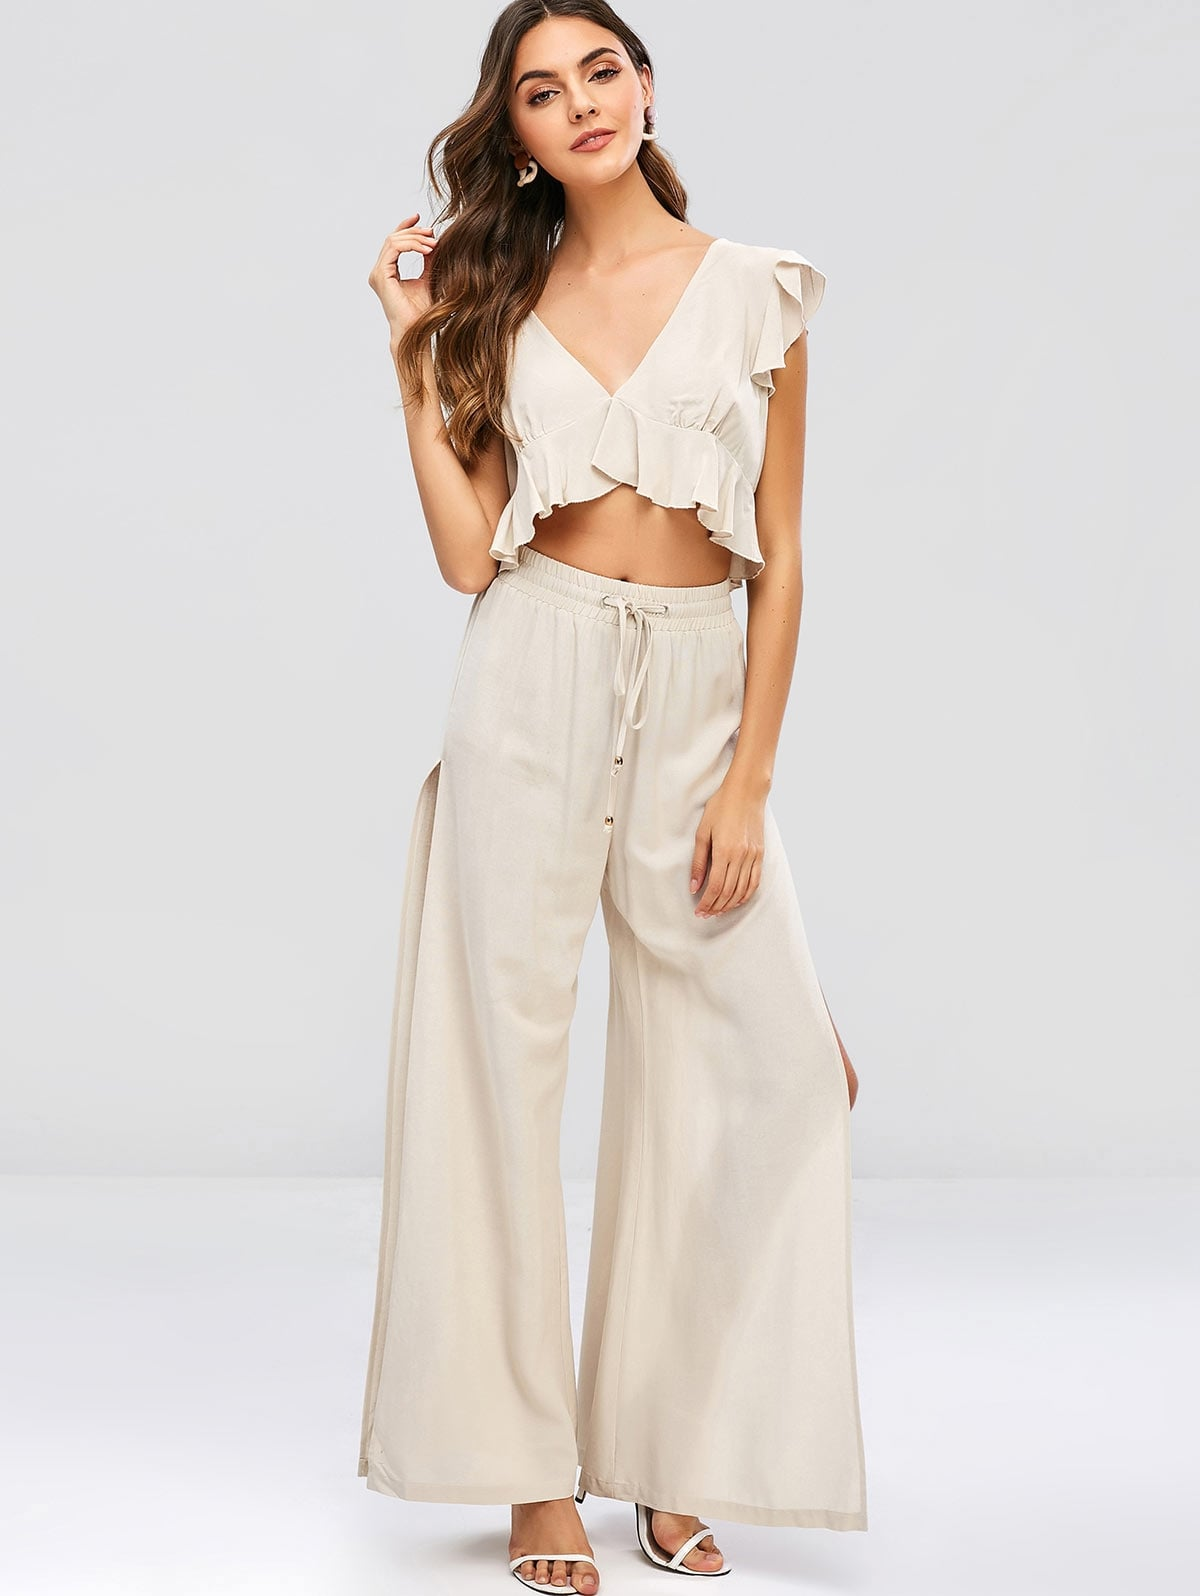 Ruffles Cropped Top And Slit Pants Set